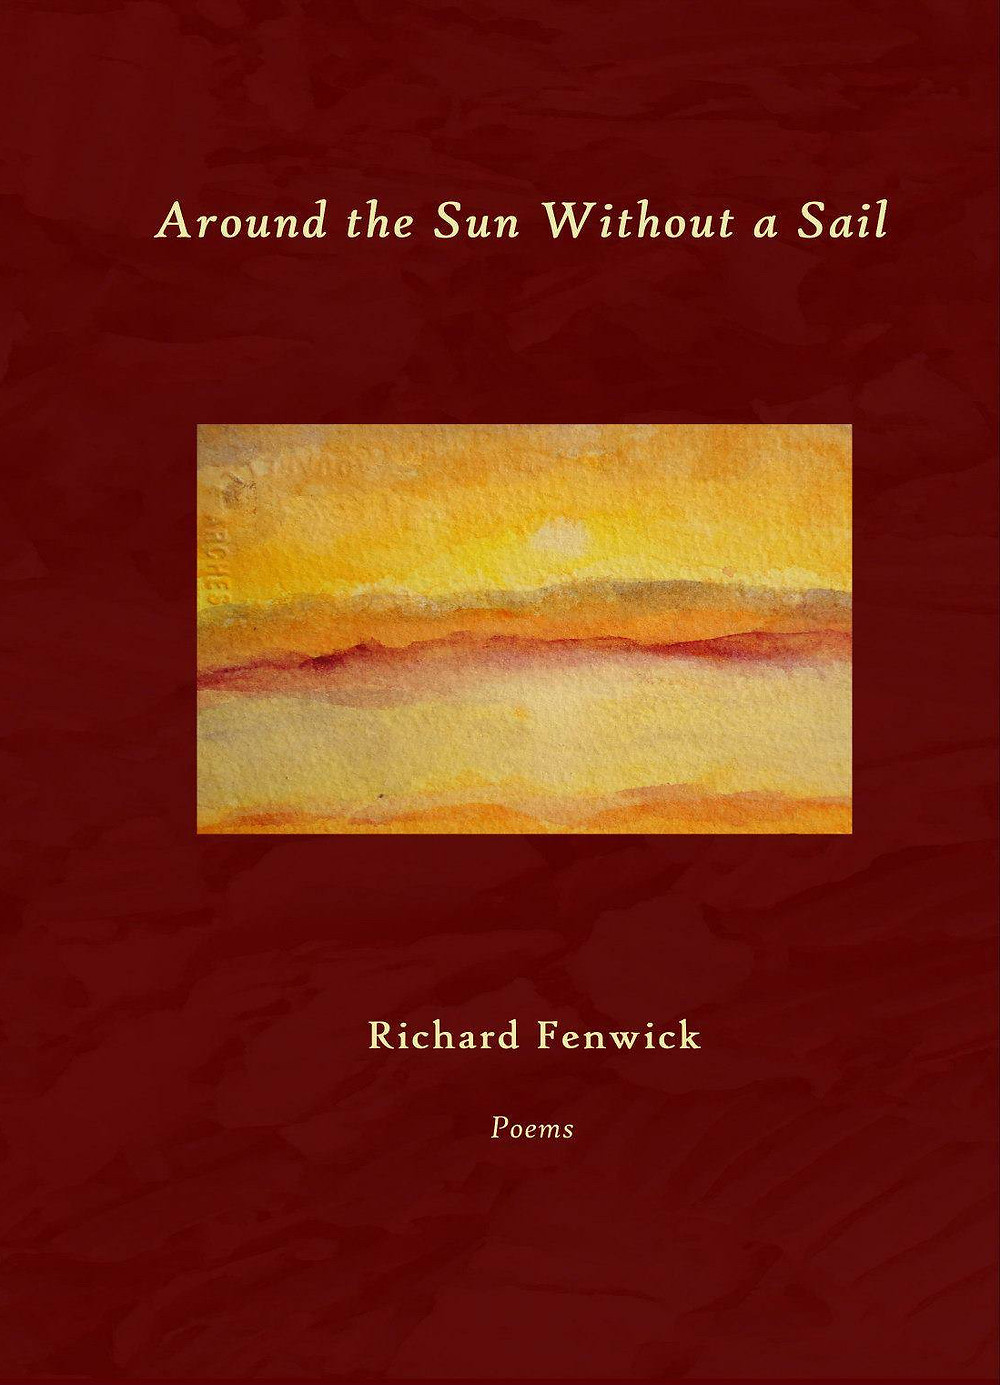 Richard Fenwick Cover Blog.jpg